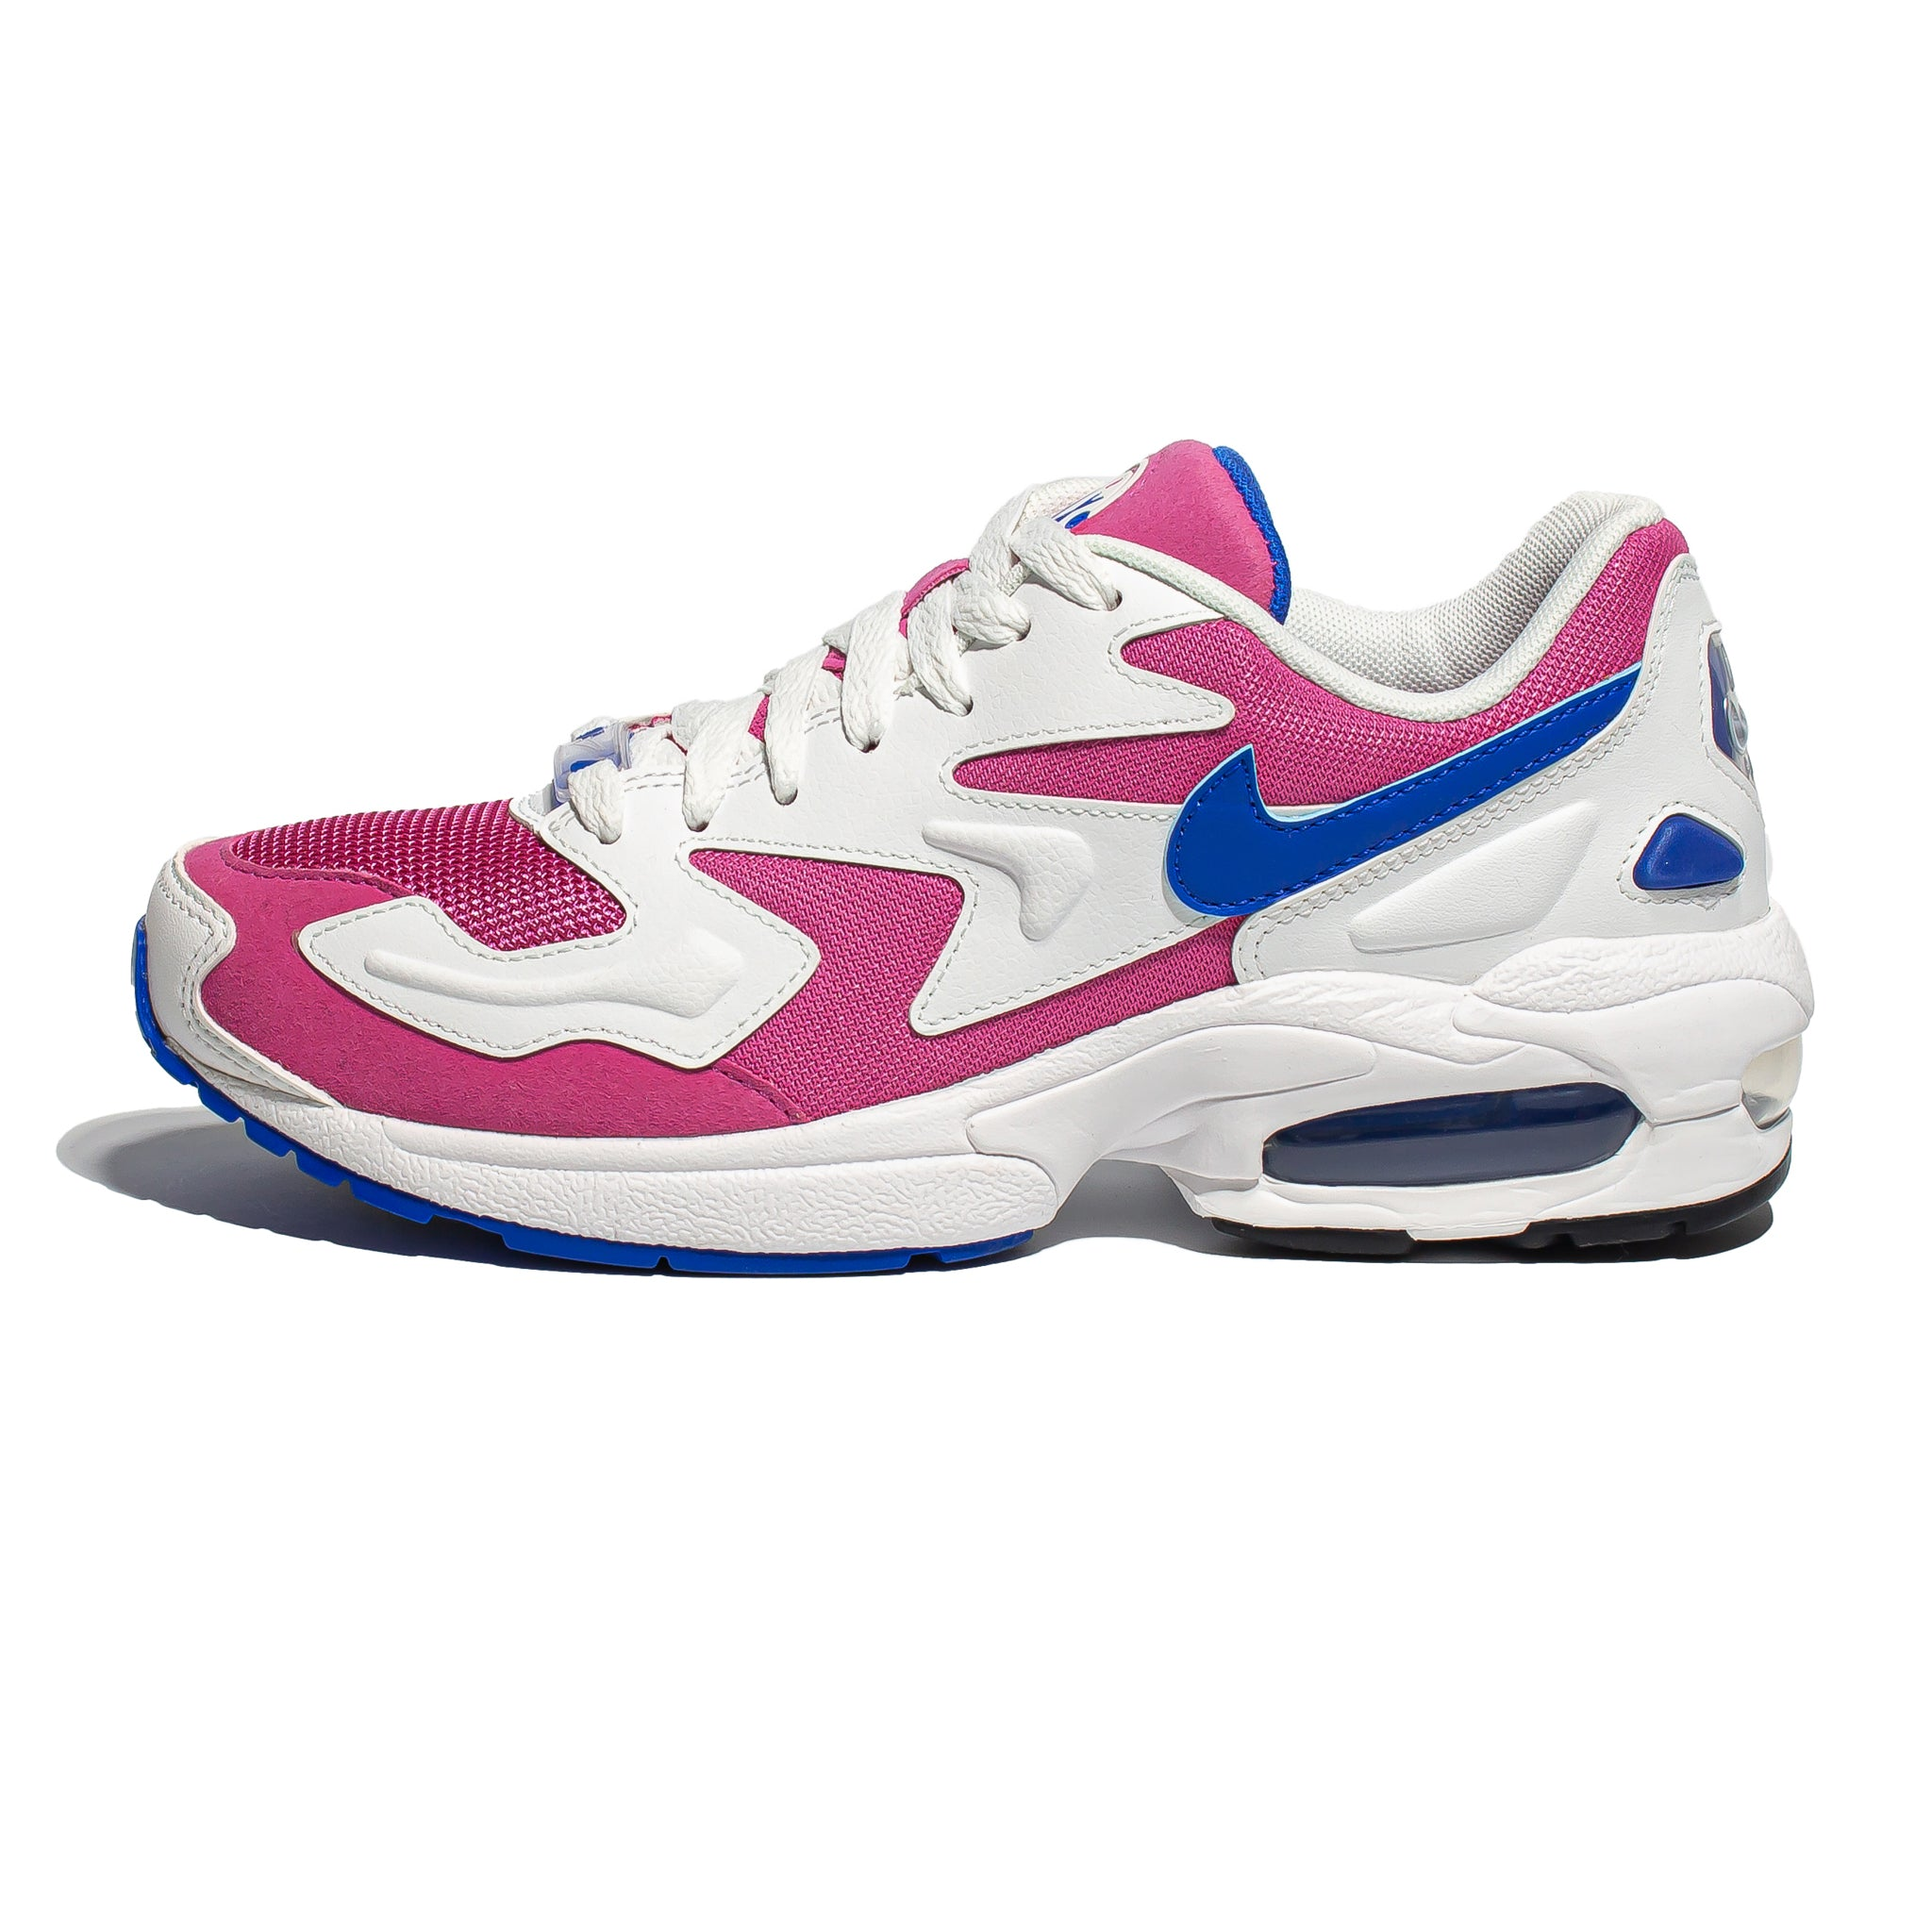 Nike Air Max 2 Light 'Cosmic Fuchsia'